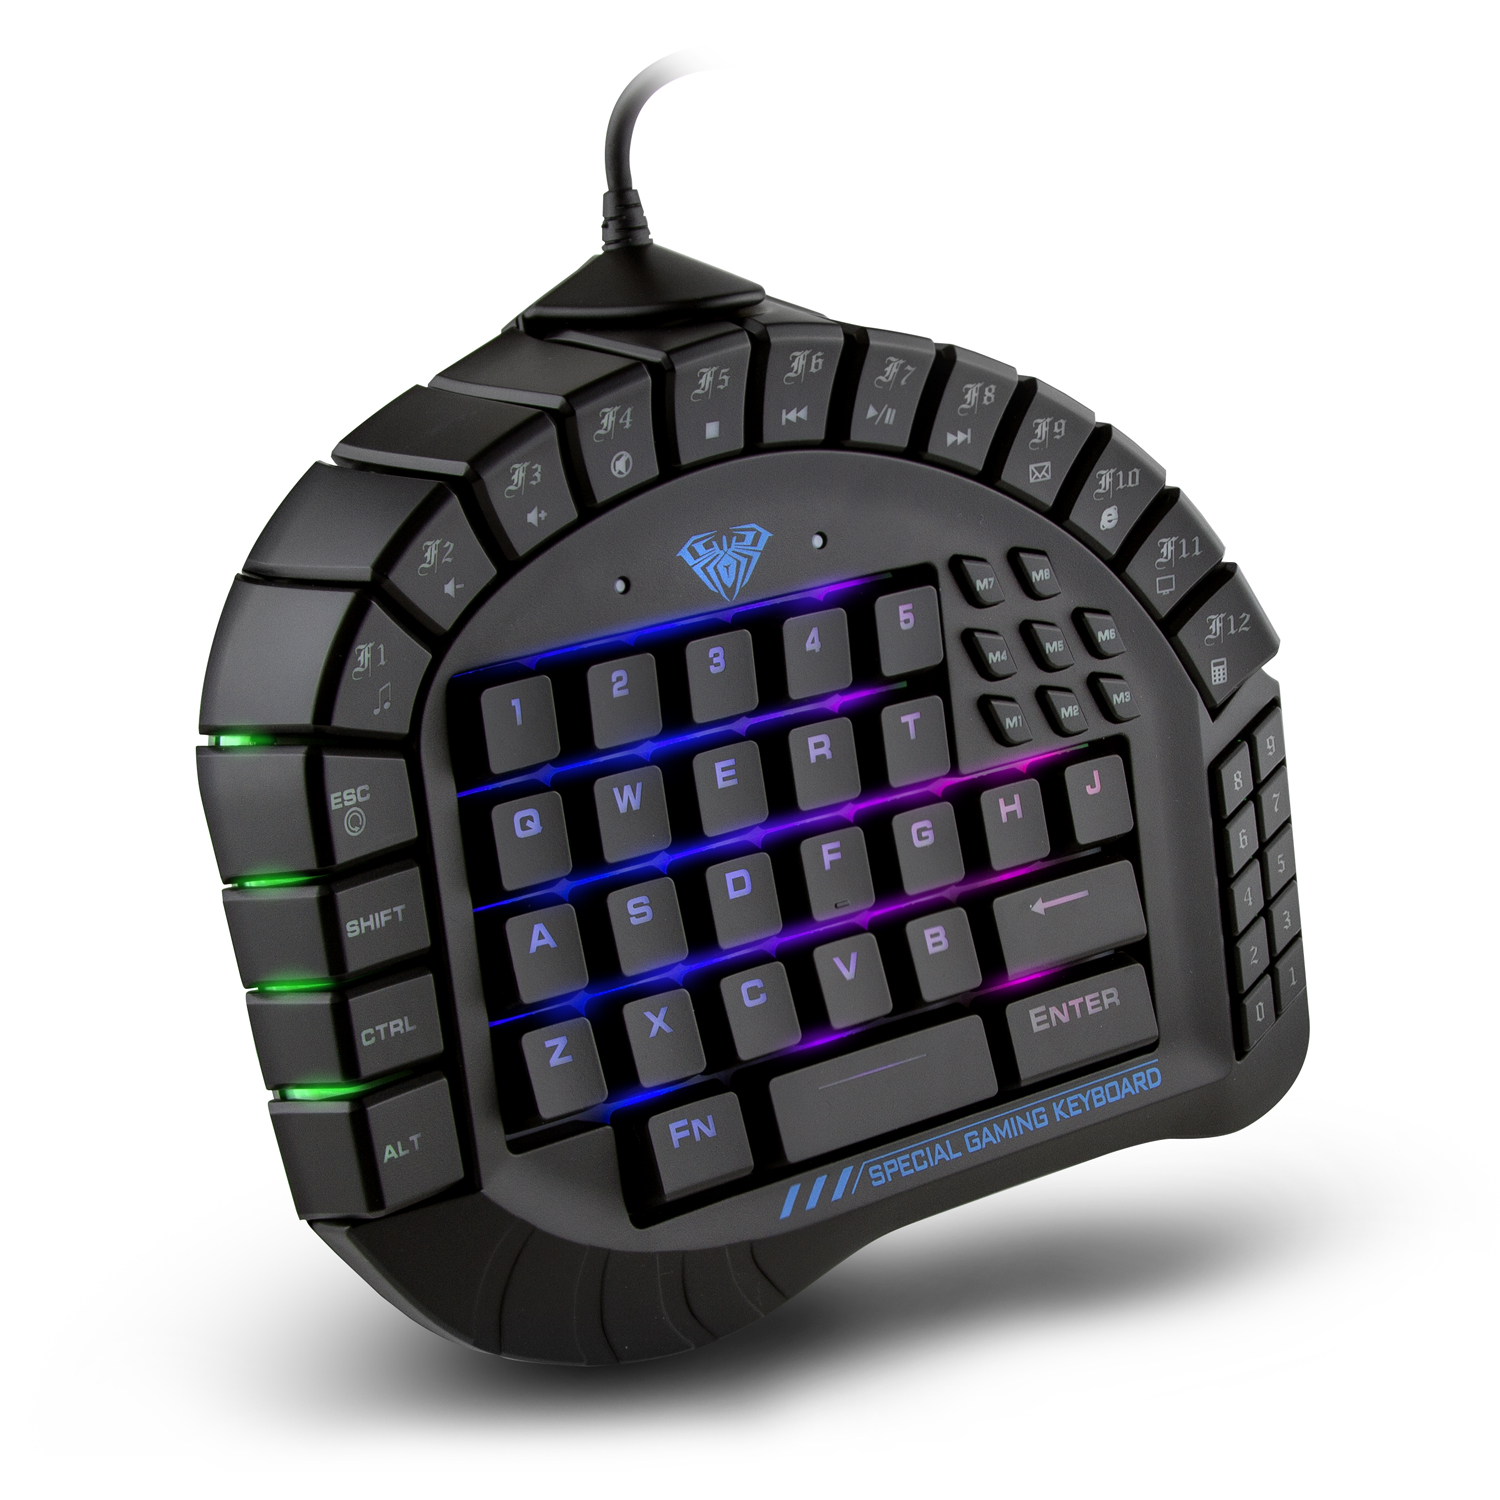 8080f1f9e67 AULA Excalibur Master One-hand Gaming Keyboard Removable Hand Rest RGB  Backlight Mechanical Keyboard - Walmart.com